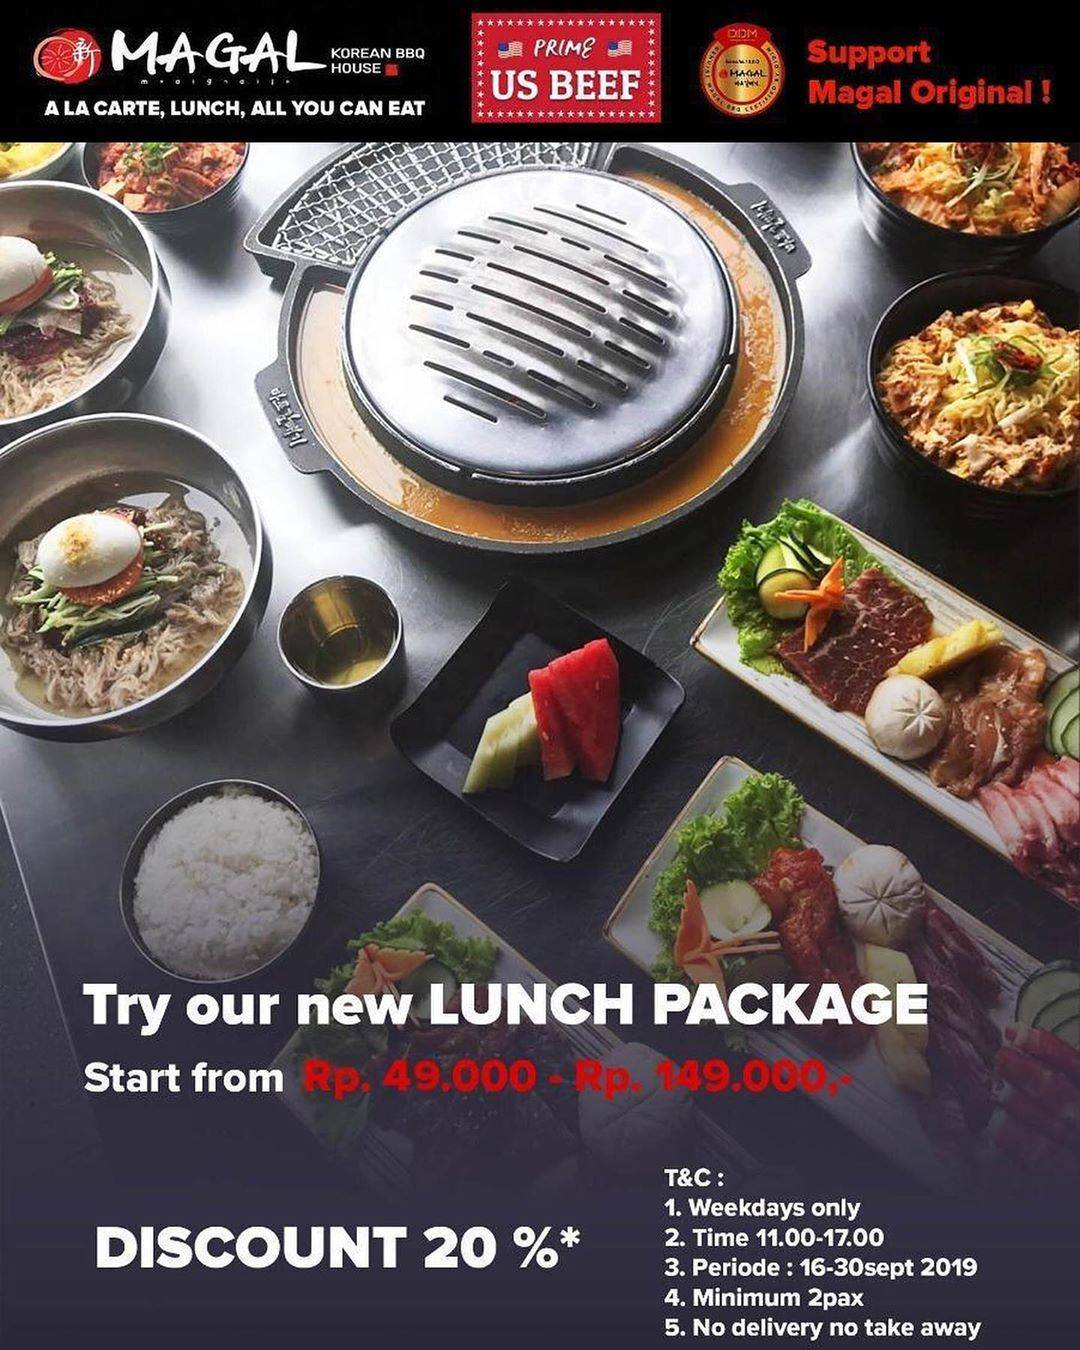 MAGAL Korean BBQ House Promo Lunch Package start from Rp. 49.000 – Rp. 149.000